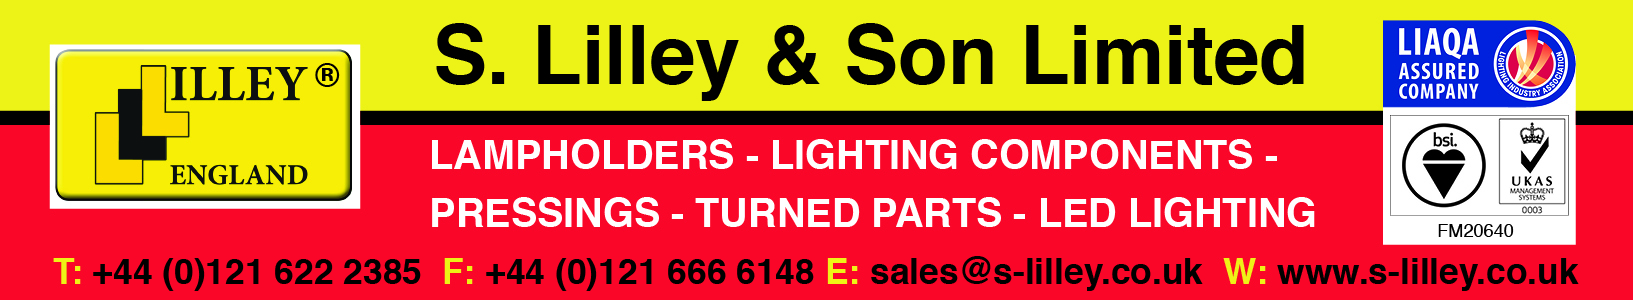 S Lilley banner April 20